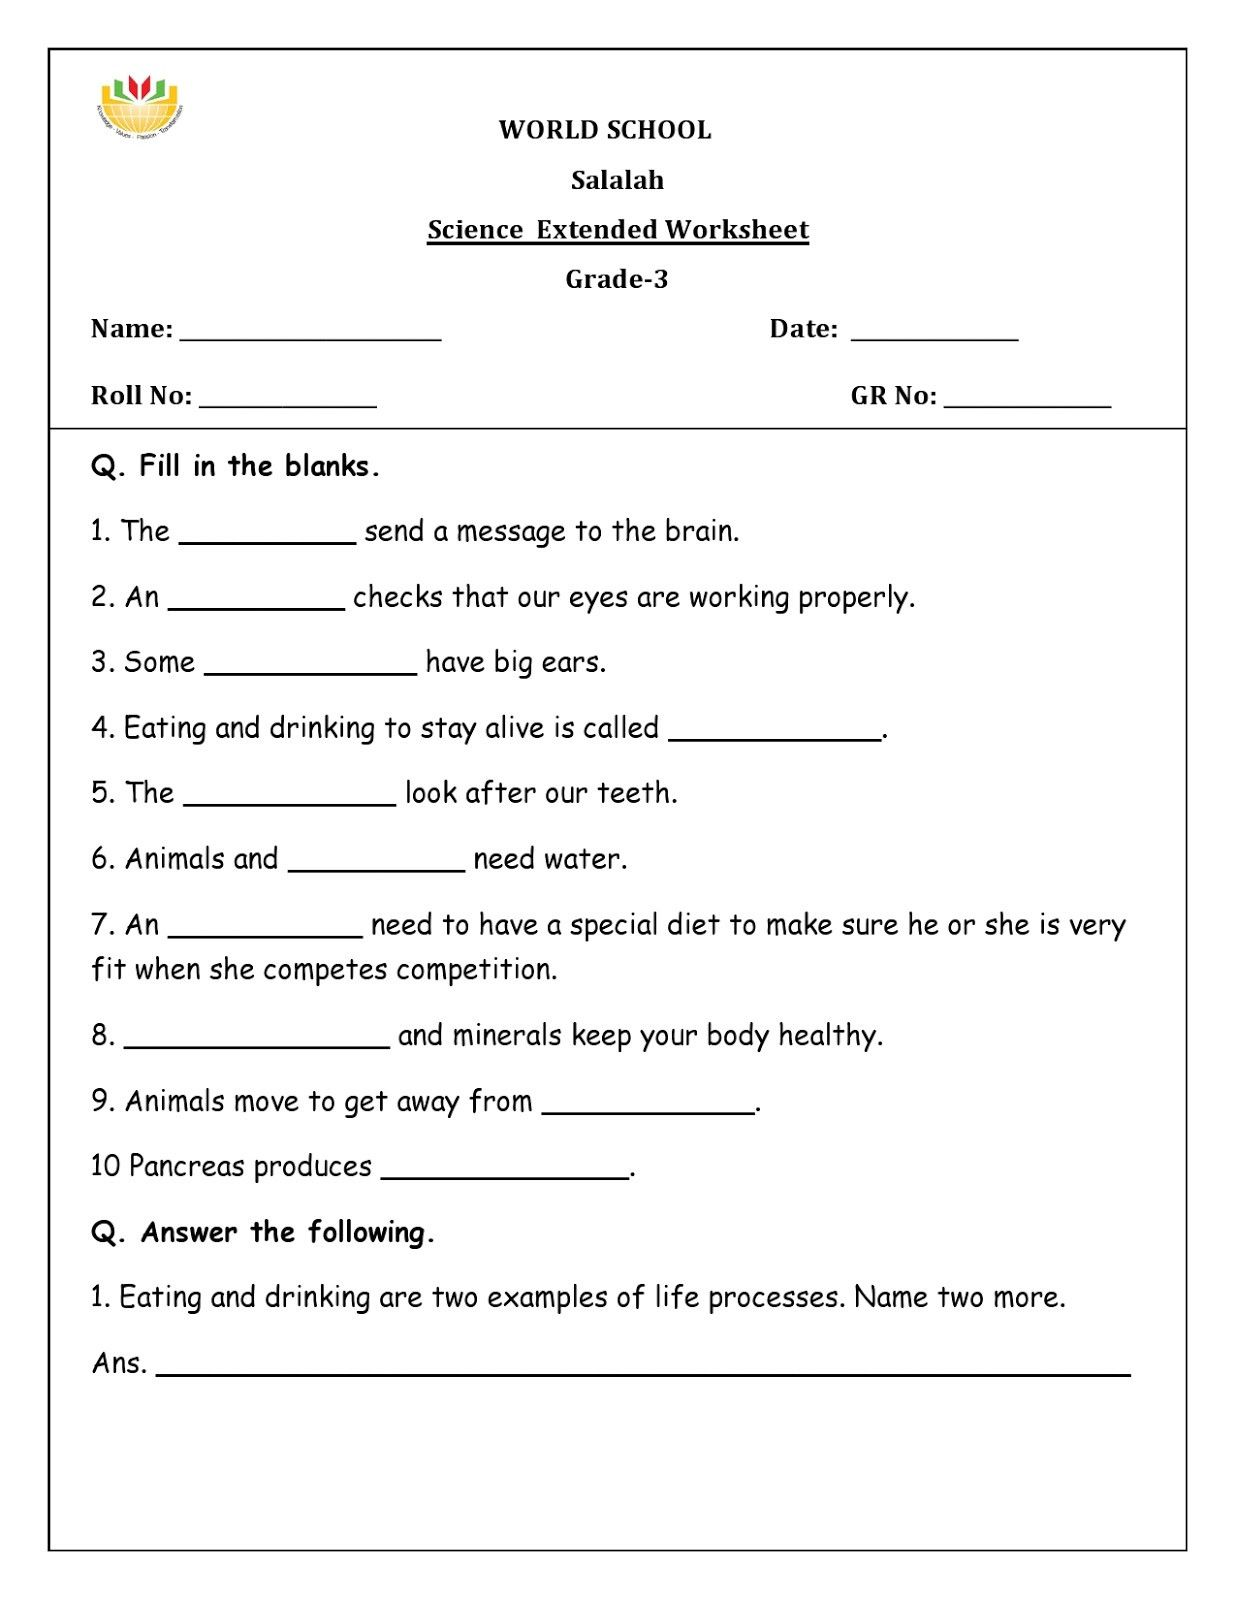 Free Fourth Grade Science Worksheets In 2020 Science Worksheets Fourth Grade Science Free Science Worksheets